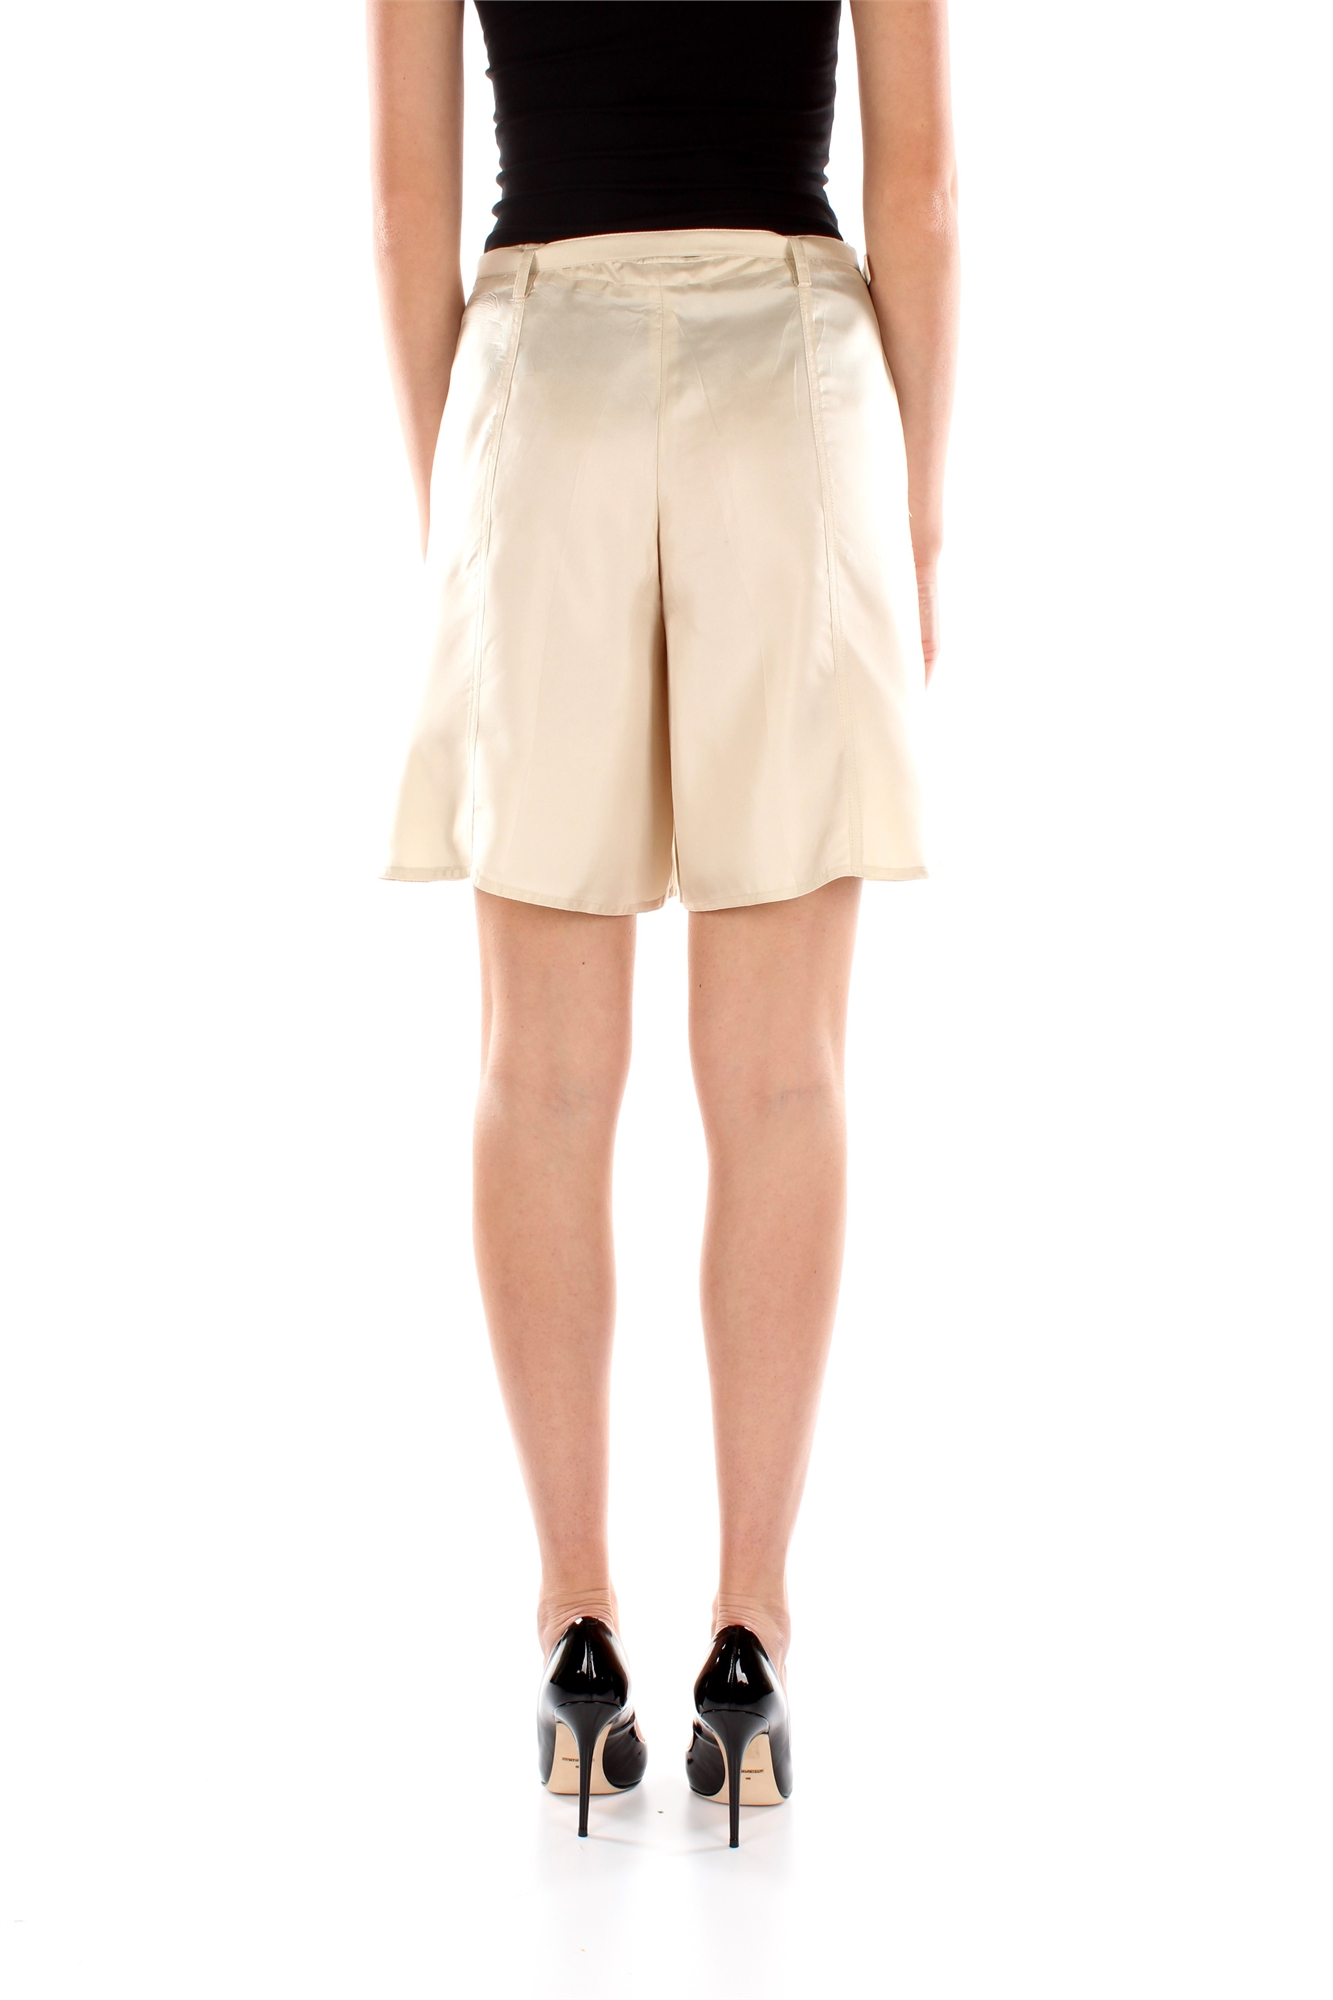 Free shipping BOTH ways on womens silk shorts clothing, from our vast selection of styles. Fast delivery, and 24/7/ real-person service with a smile. Click or call